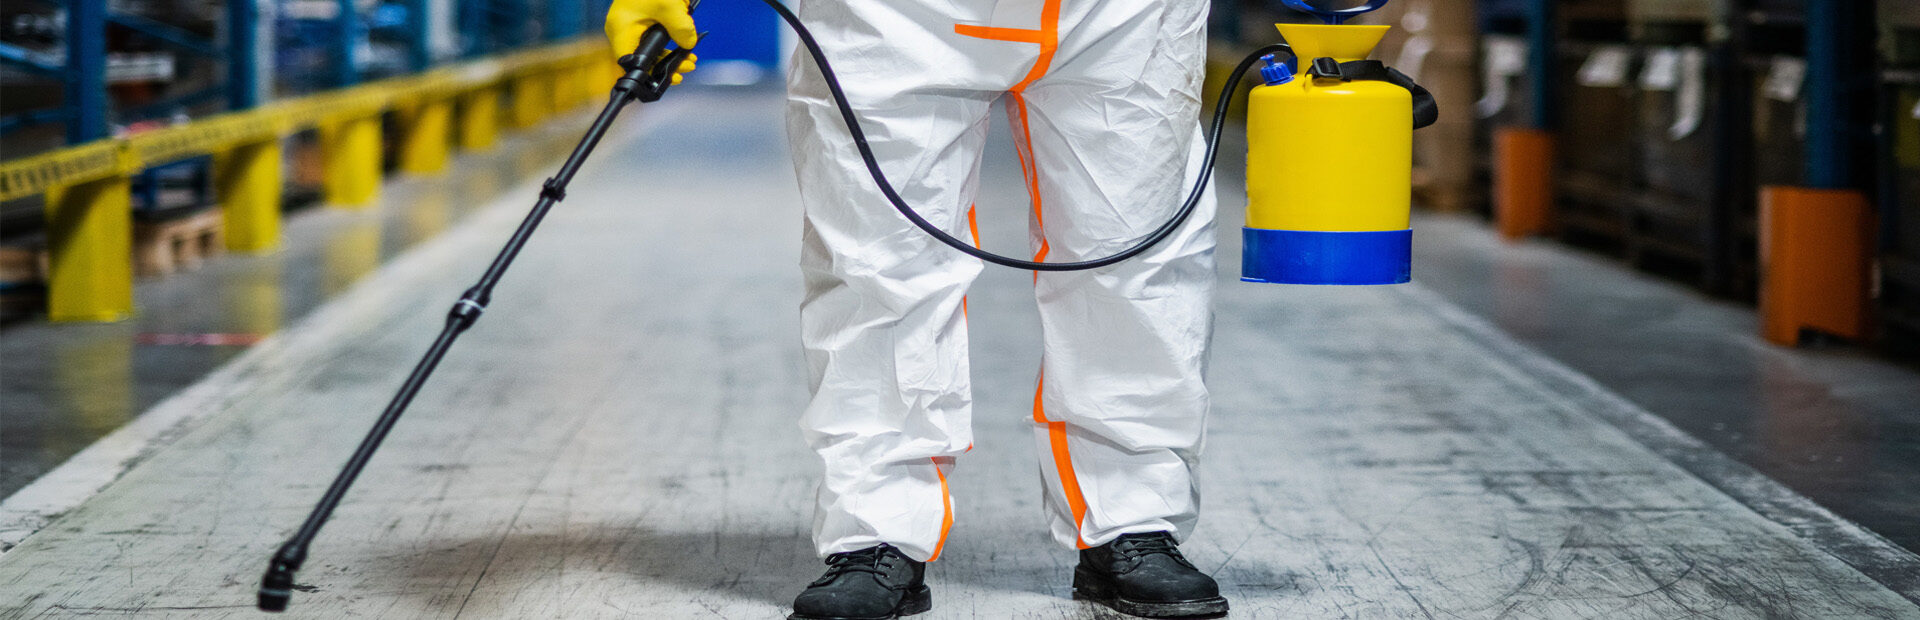 disinfectant & bacteria spraying